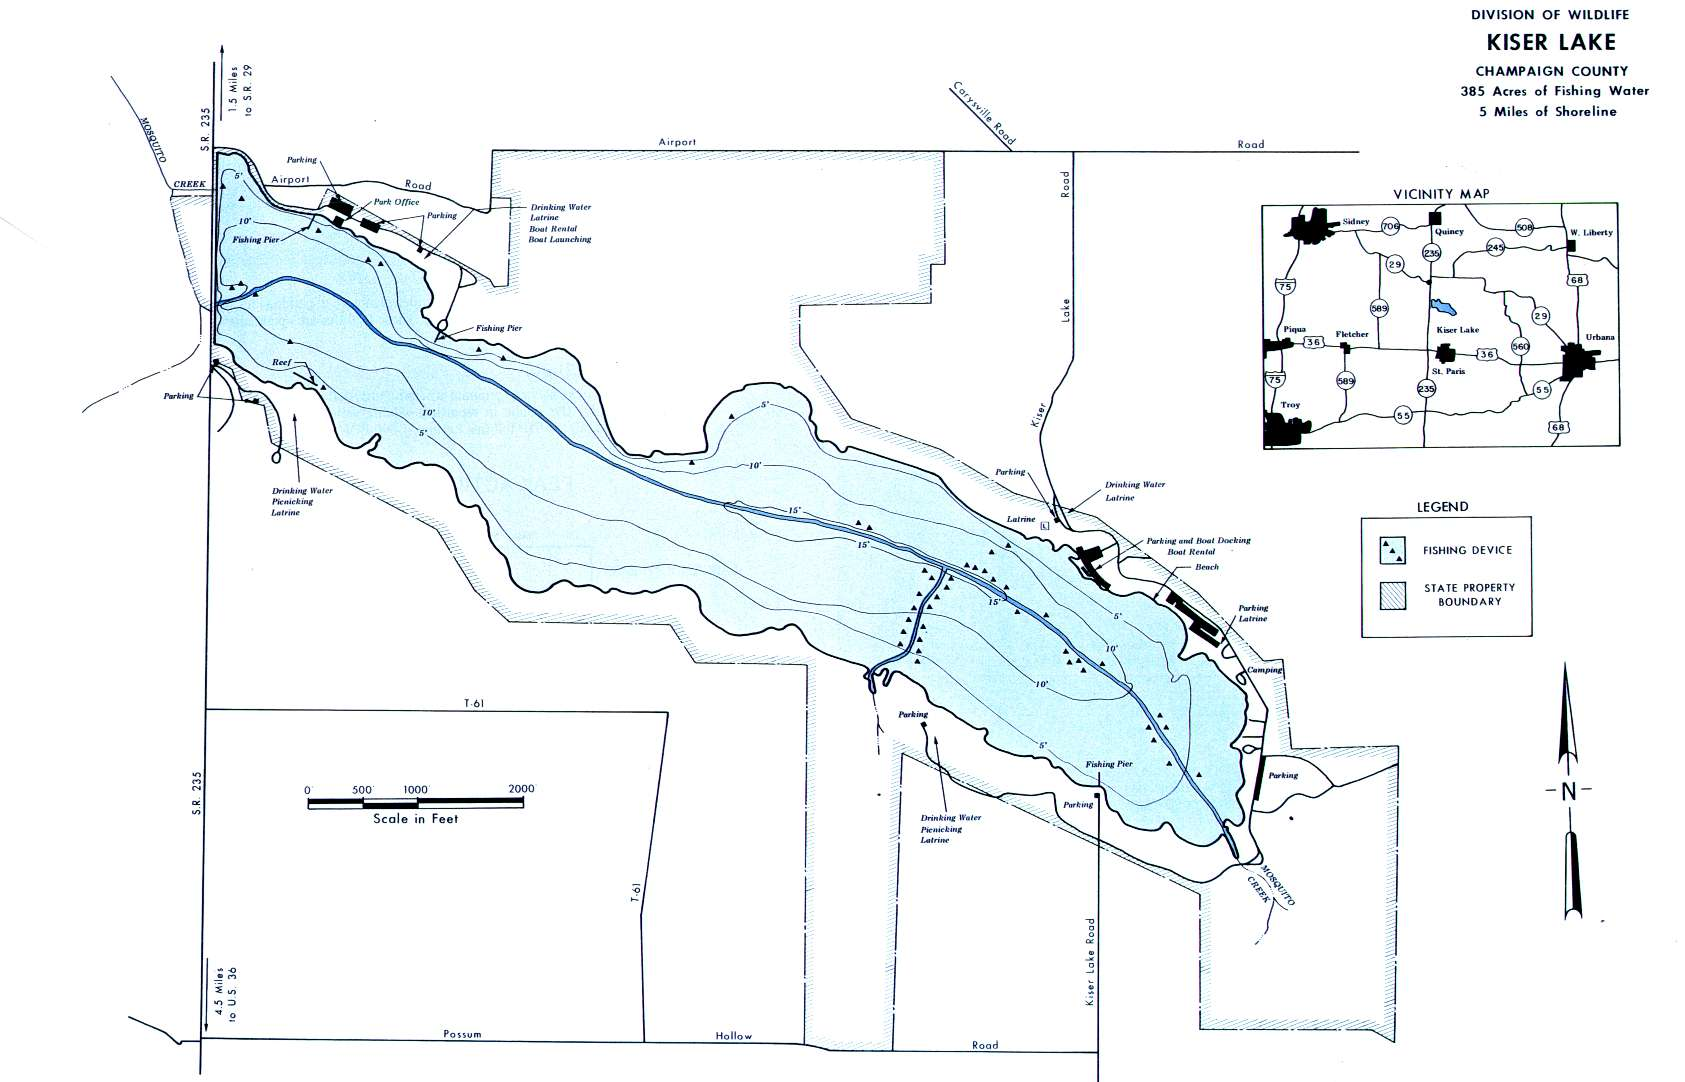 Kiser Lake Fishing Map - GoFishOhio